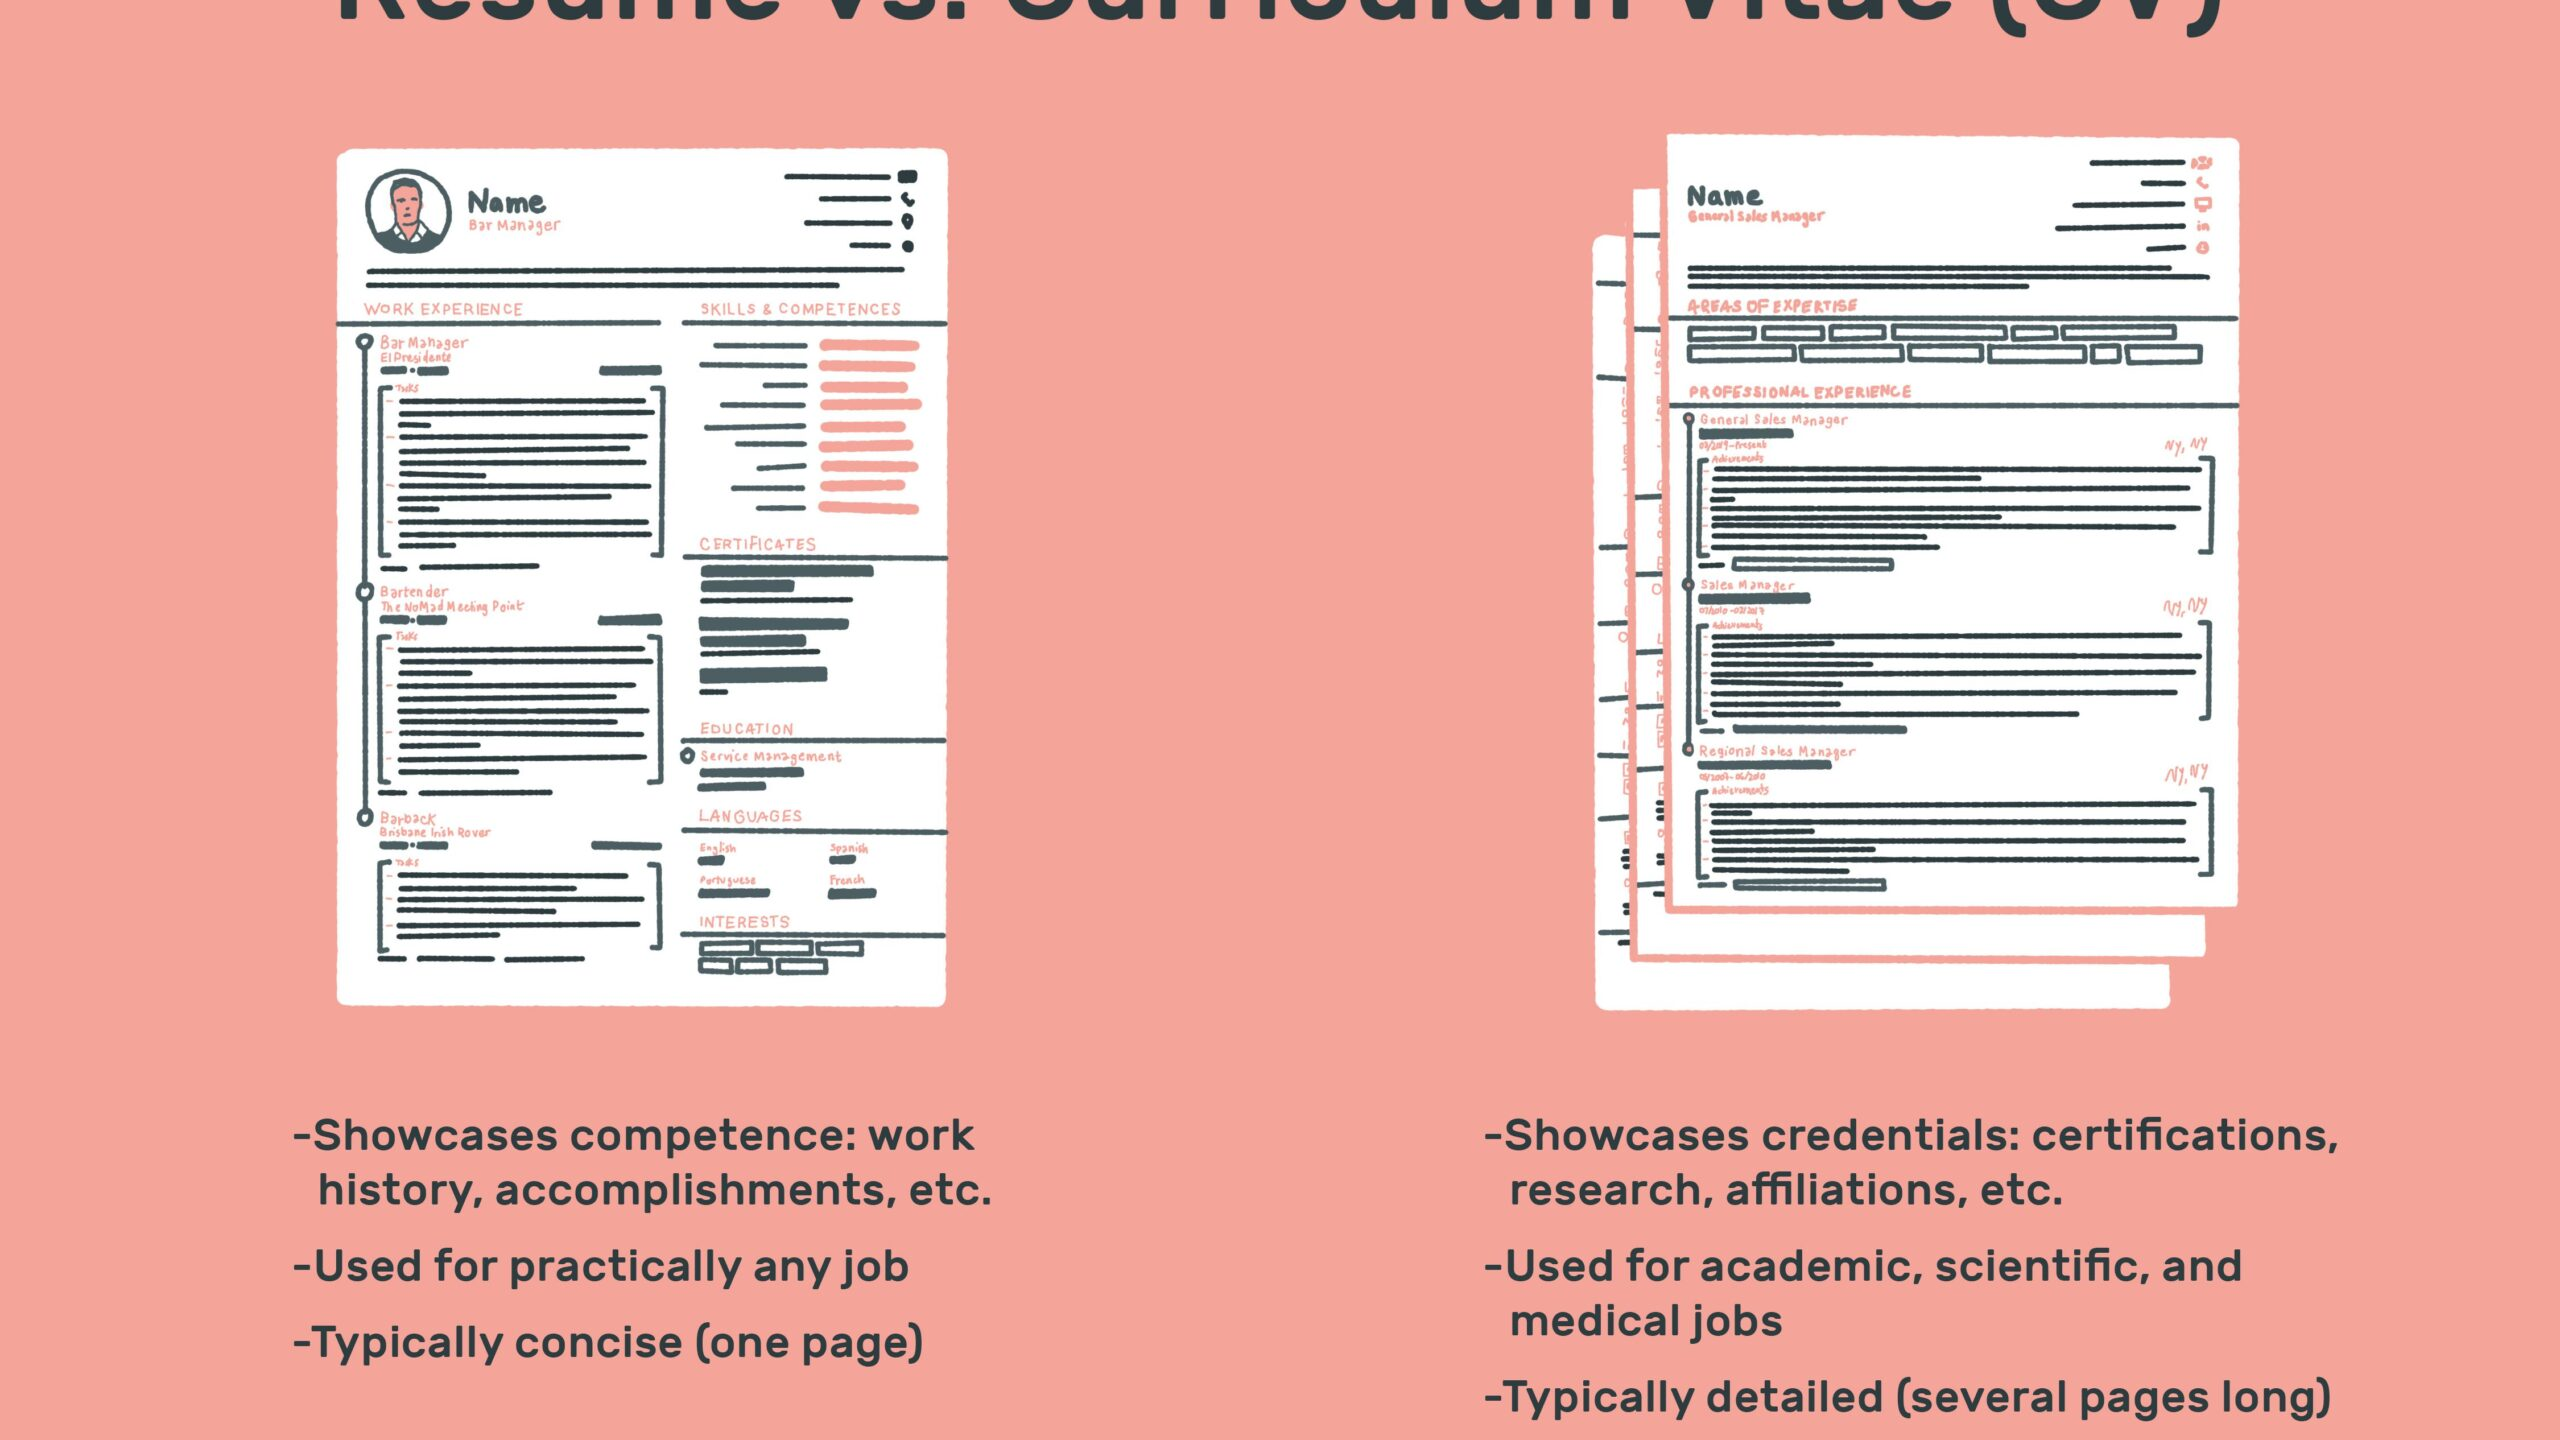 the difference between resume and curriculum vitae copy job description into cv vs final Resume Copy Job Description Into Resume